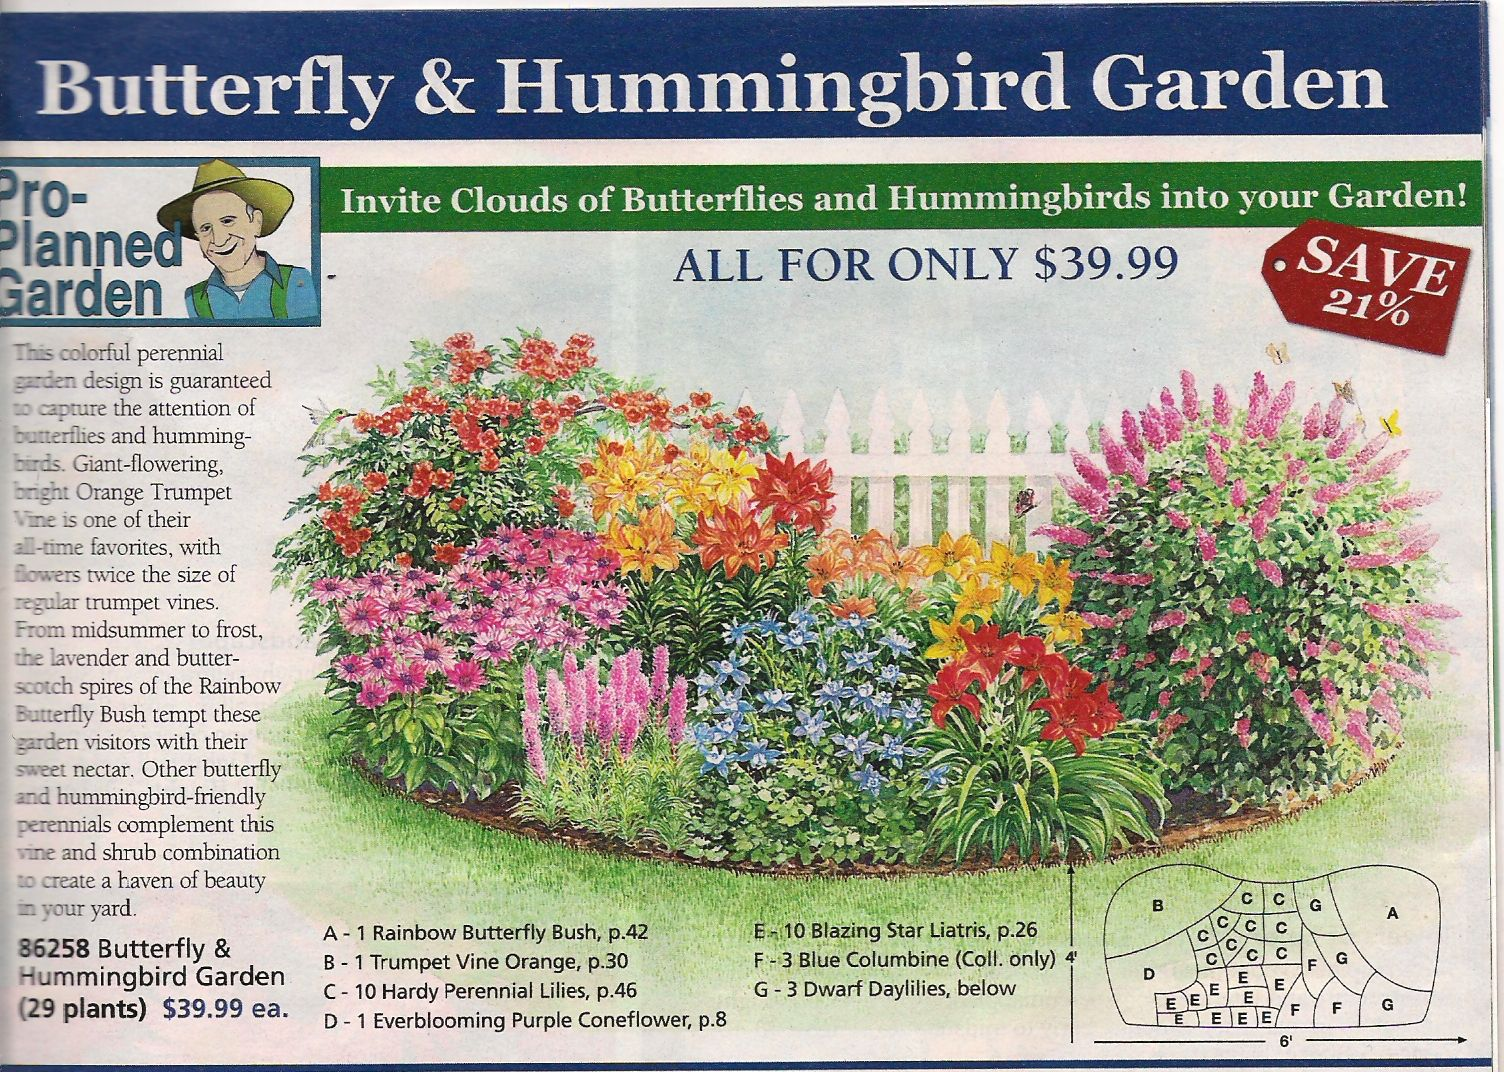 Garden plan from michigan bulb co for a butterfly garden for Perennial garden design zone 9